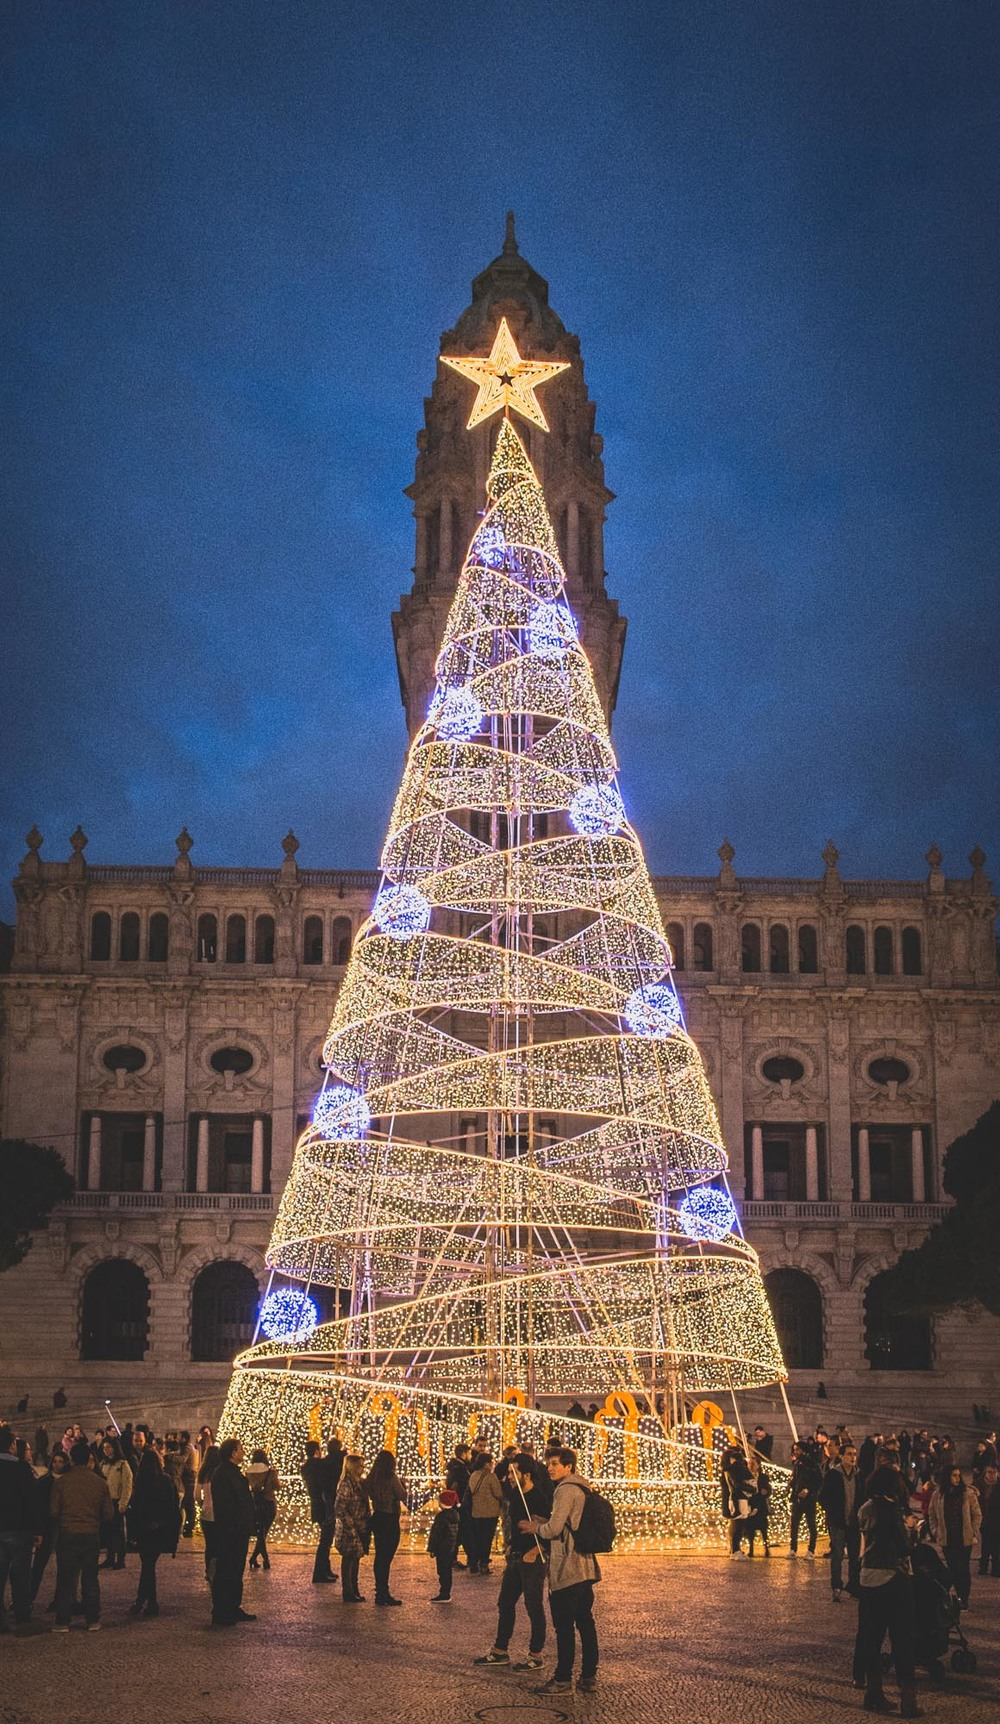 Huge christmas tree in front of the city hall of Porto.